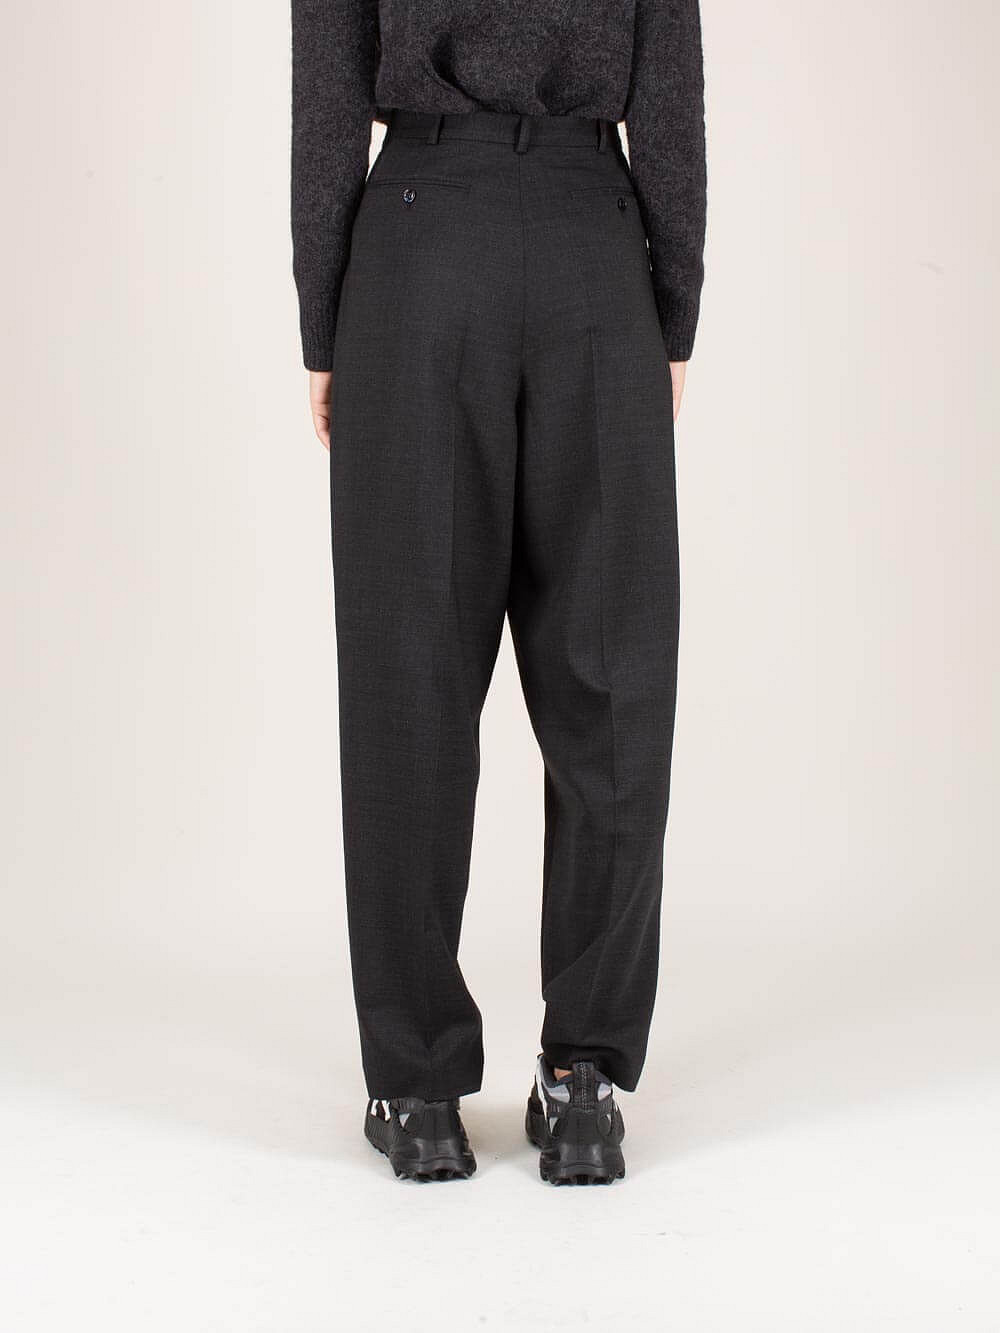 Peggerine Double Suit Trousers charcoal